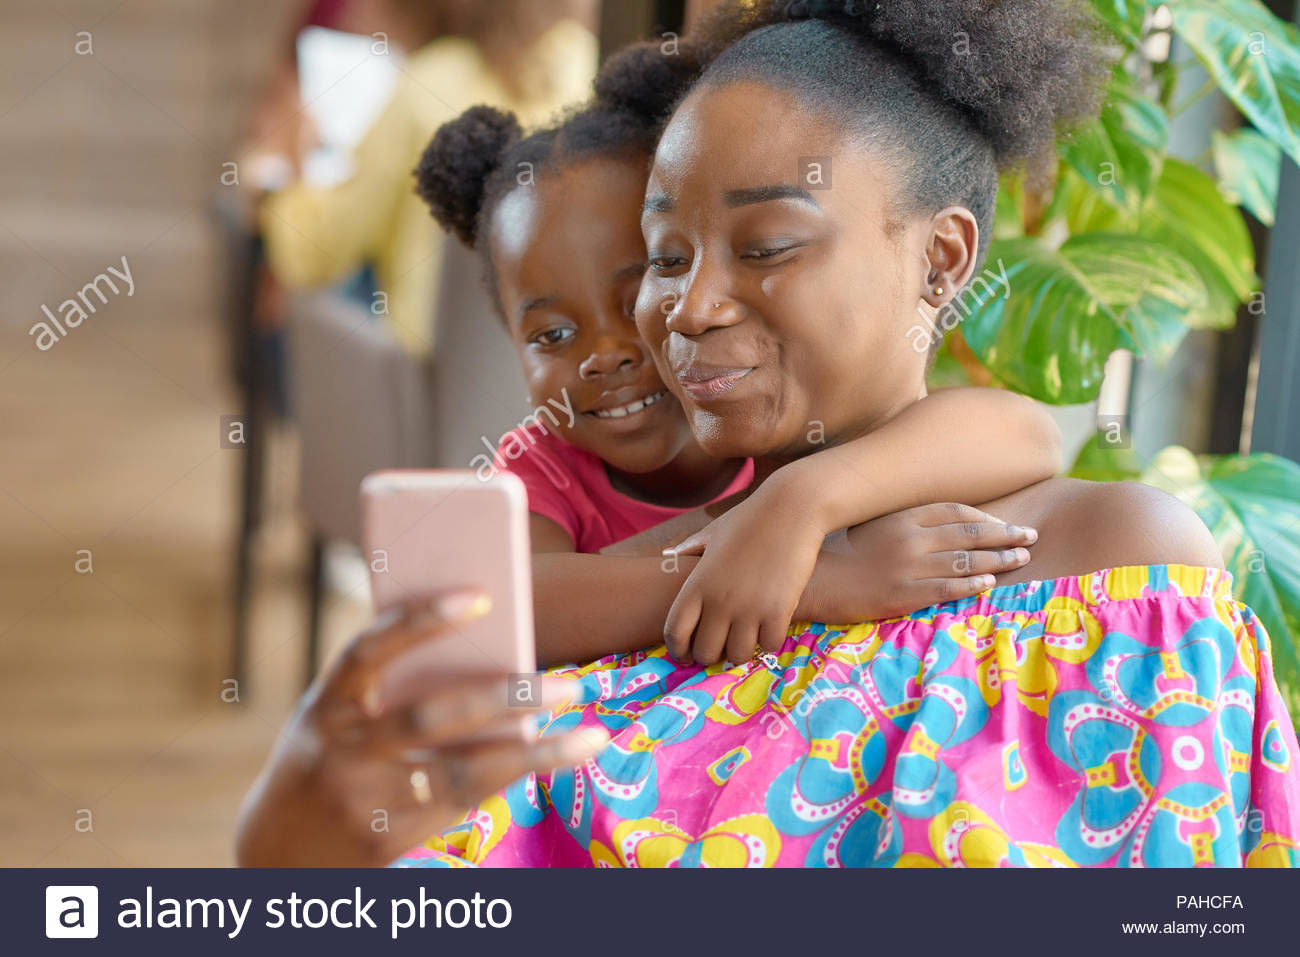 Smiling mother taking selfie with her cute little daughter. Looking at smartphone, feeling happy, satisfied, relaxed. Family hugs, lovely photo. Having good time. Sitting in cafe. - Stock Image